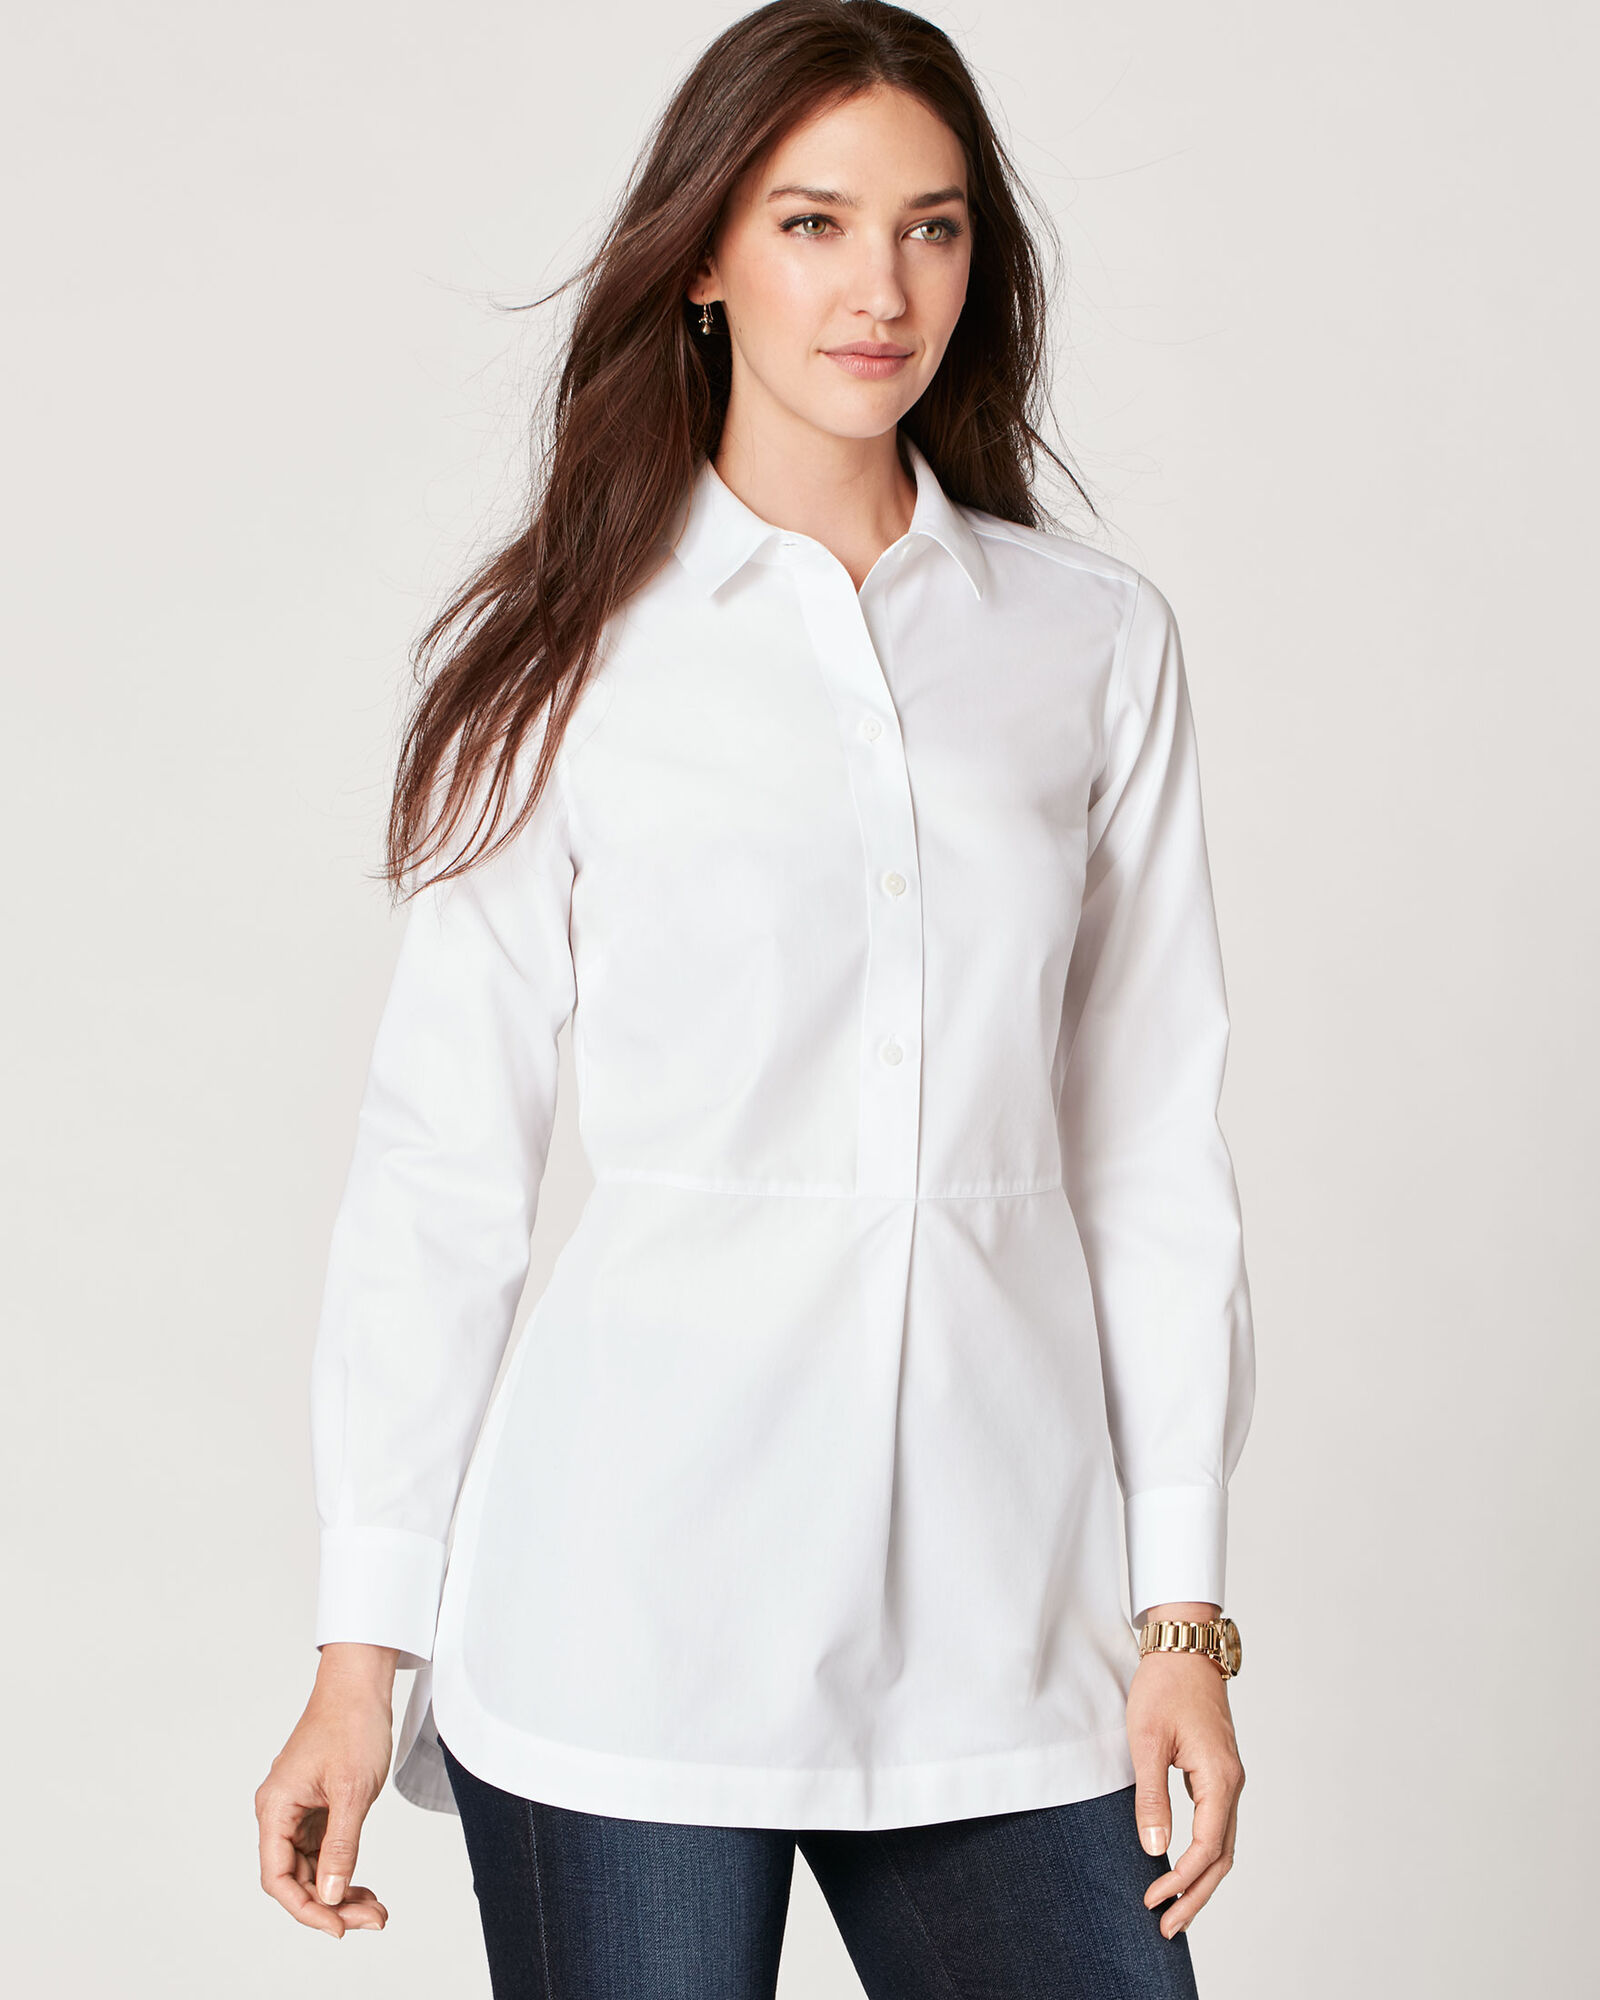 Chaps shirts at Kohl's - Shop our full line of women's shirts, including this Chaps No Iron Shirt, at Kohl's. Sponsored Links Outside companies pay to advertise via these links when specific phrases and words are searched.